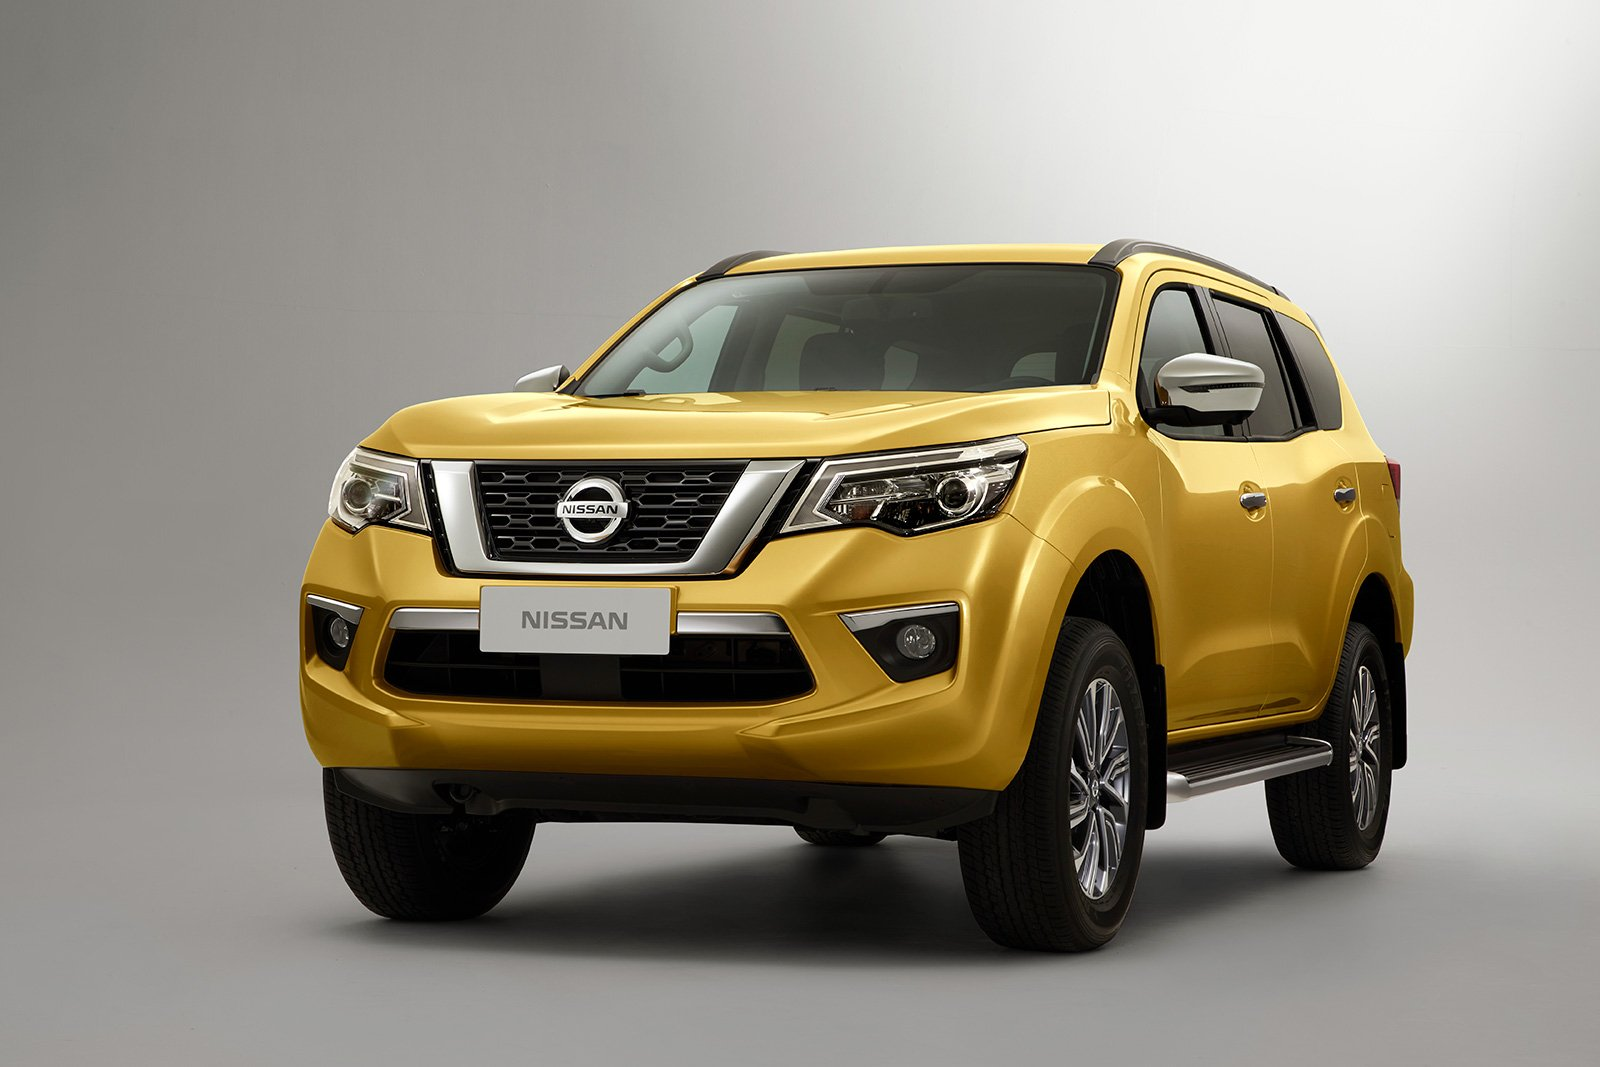 Nissan Introduces its New Body-on-Frame SUV » AutoGuide.com News